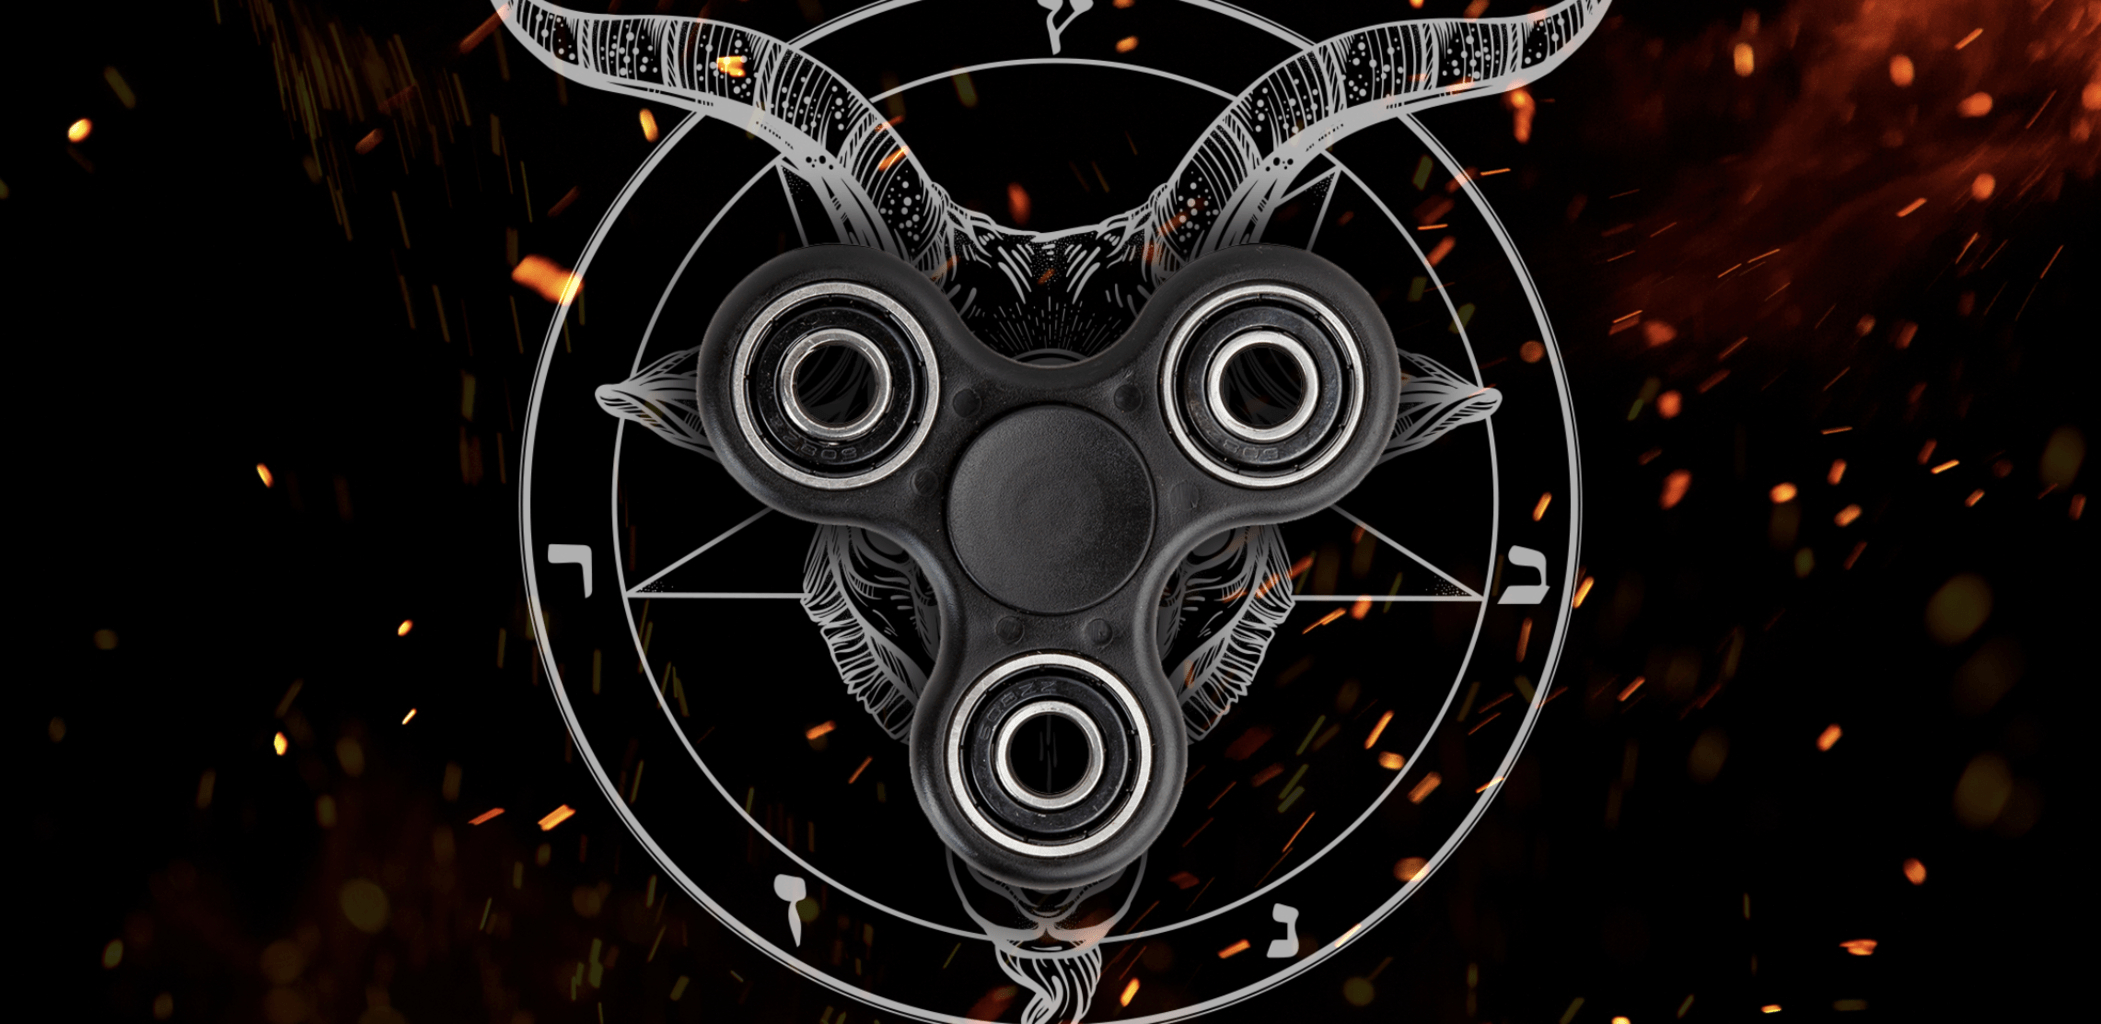 5 MAJOR Theological Problems with Fidget Spinners | RELEVANT